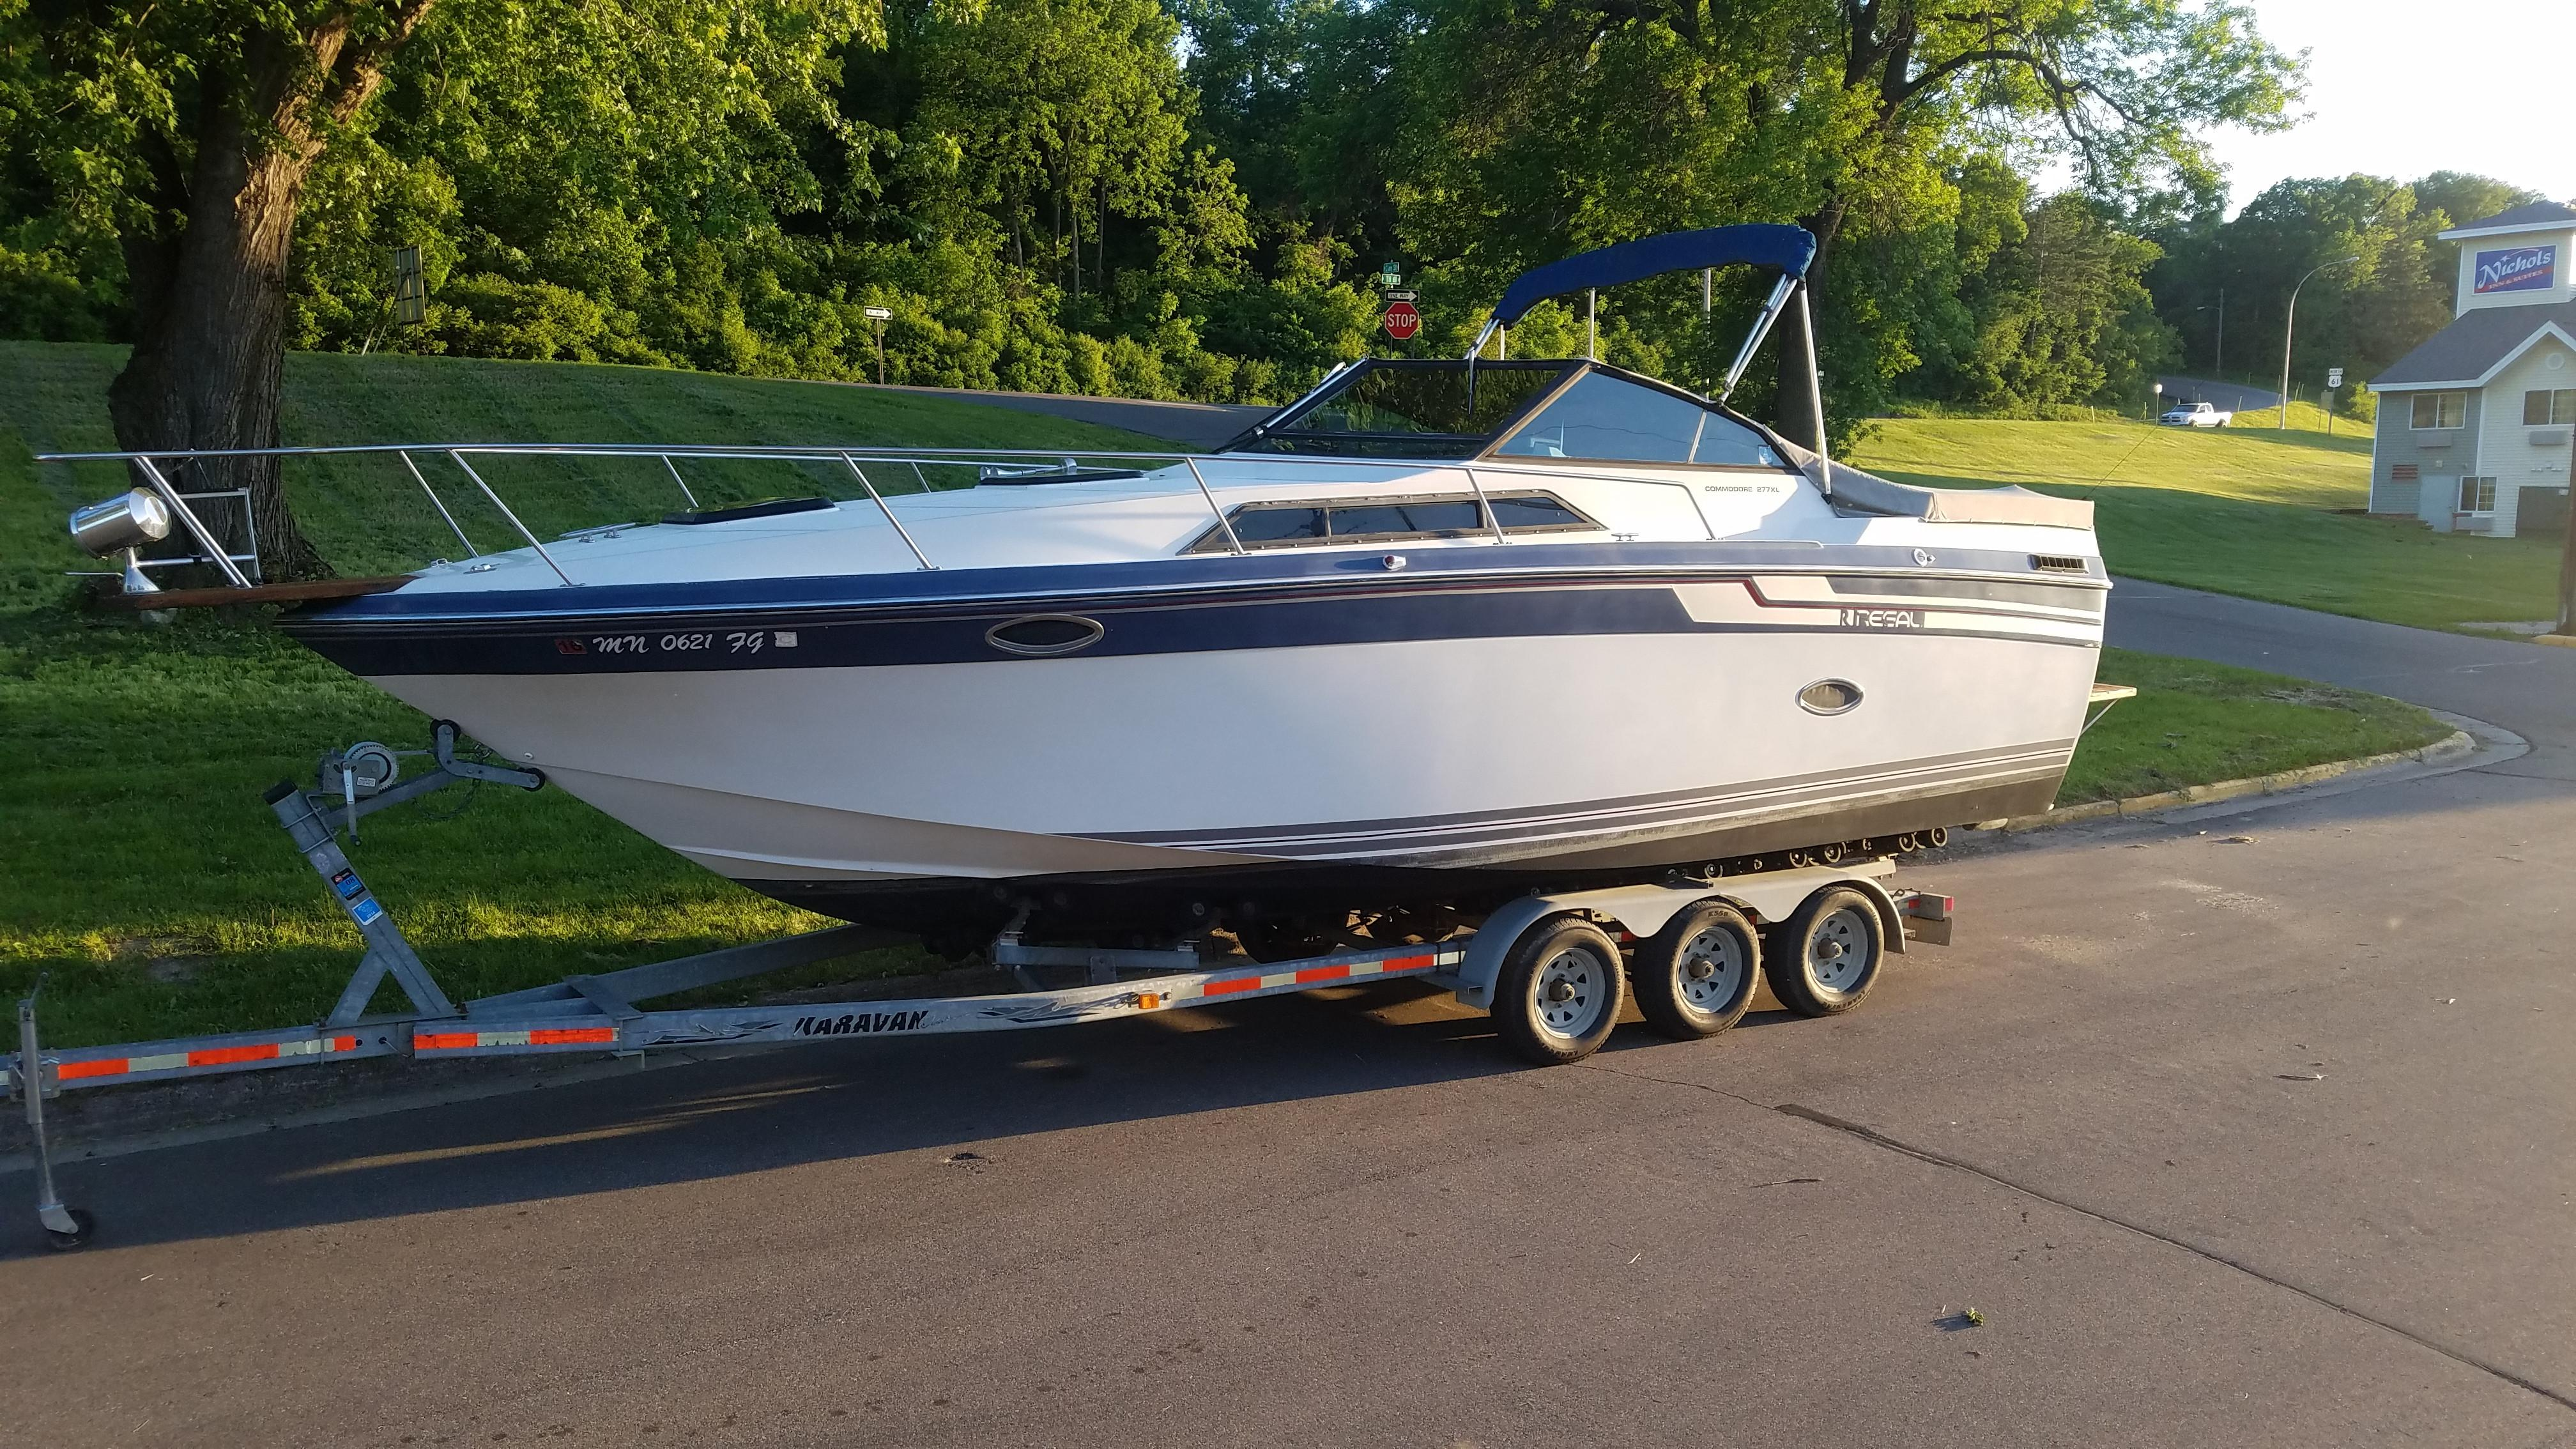 Insurance Brokers Of Mn >> 1987 Regal 277 XL Commodore Power Boat For Sale - www.yachtworld.com